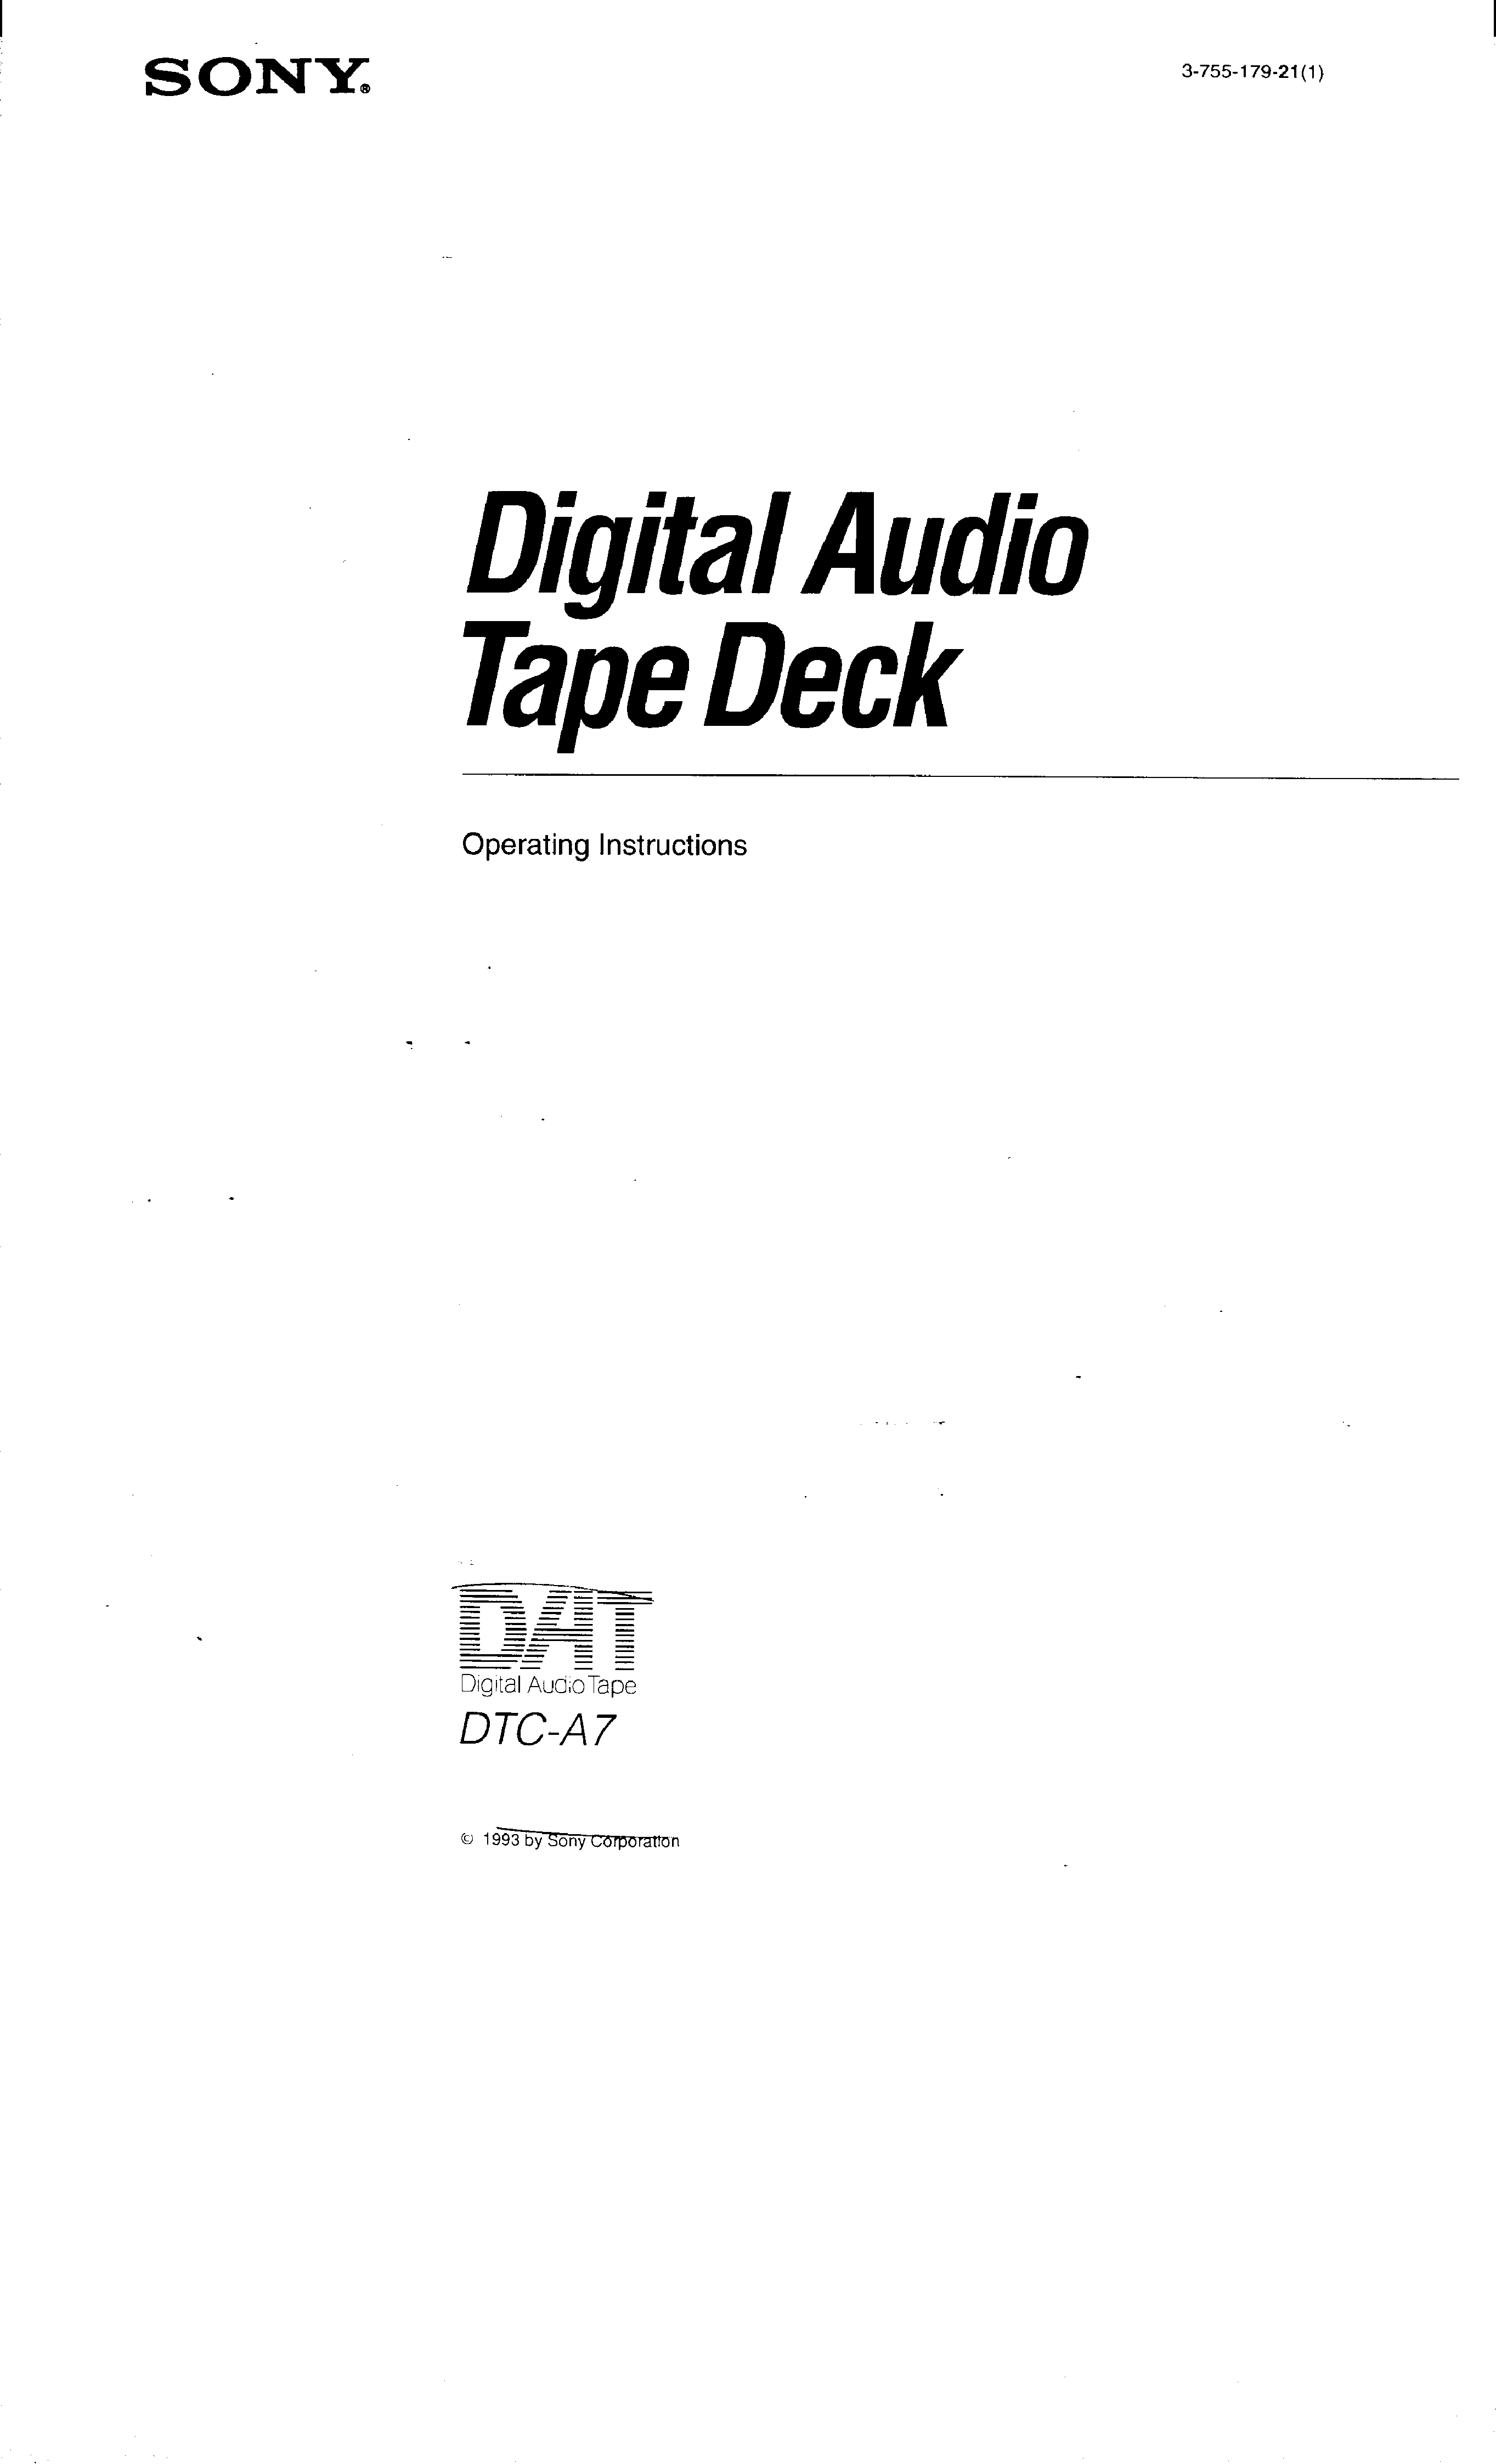 SONY DTC-A7 - Owner's Manual Immediate Download